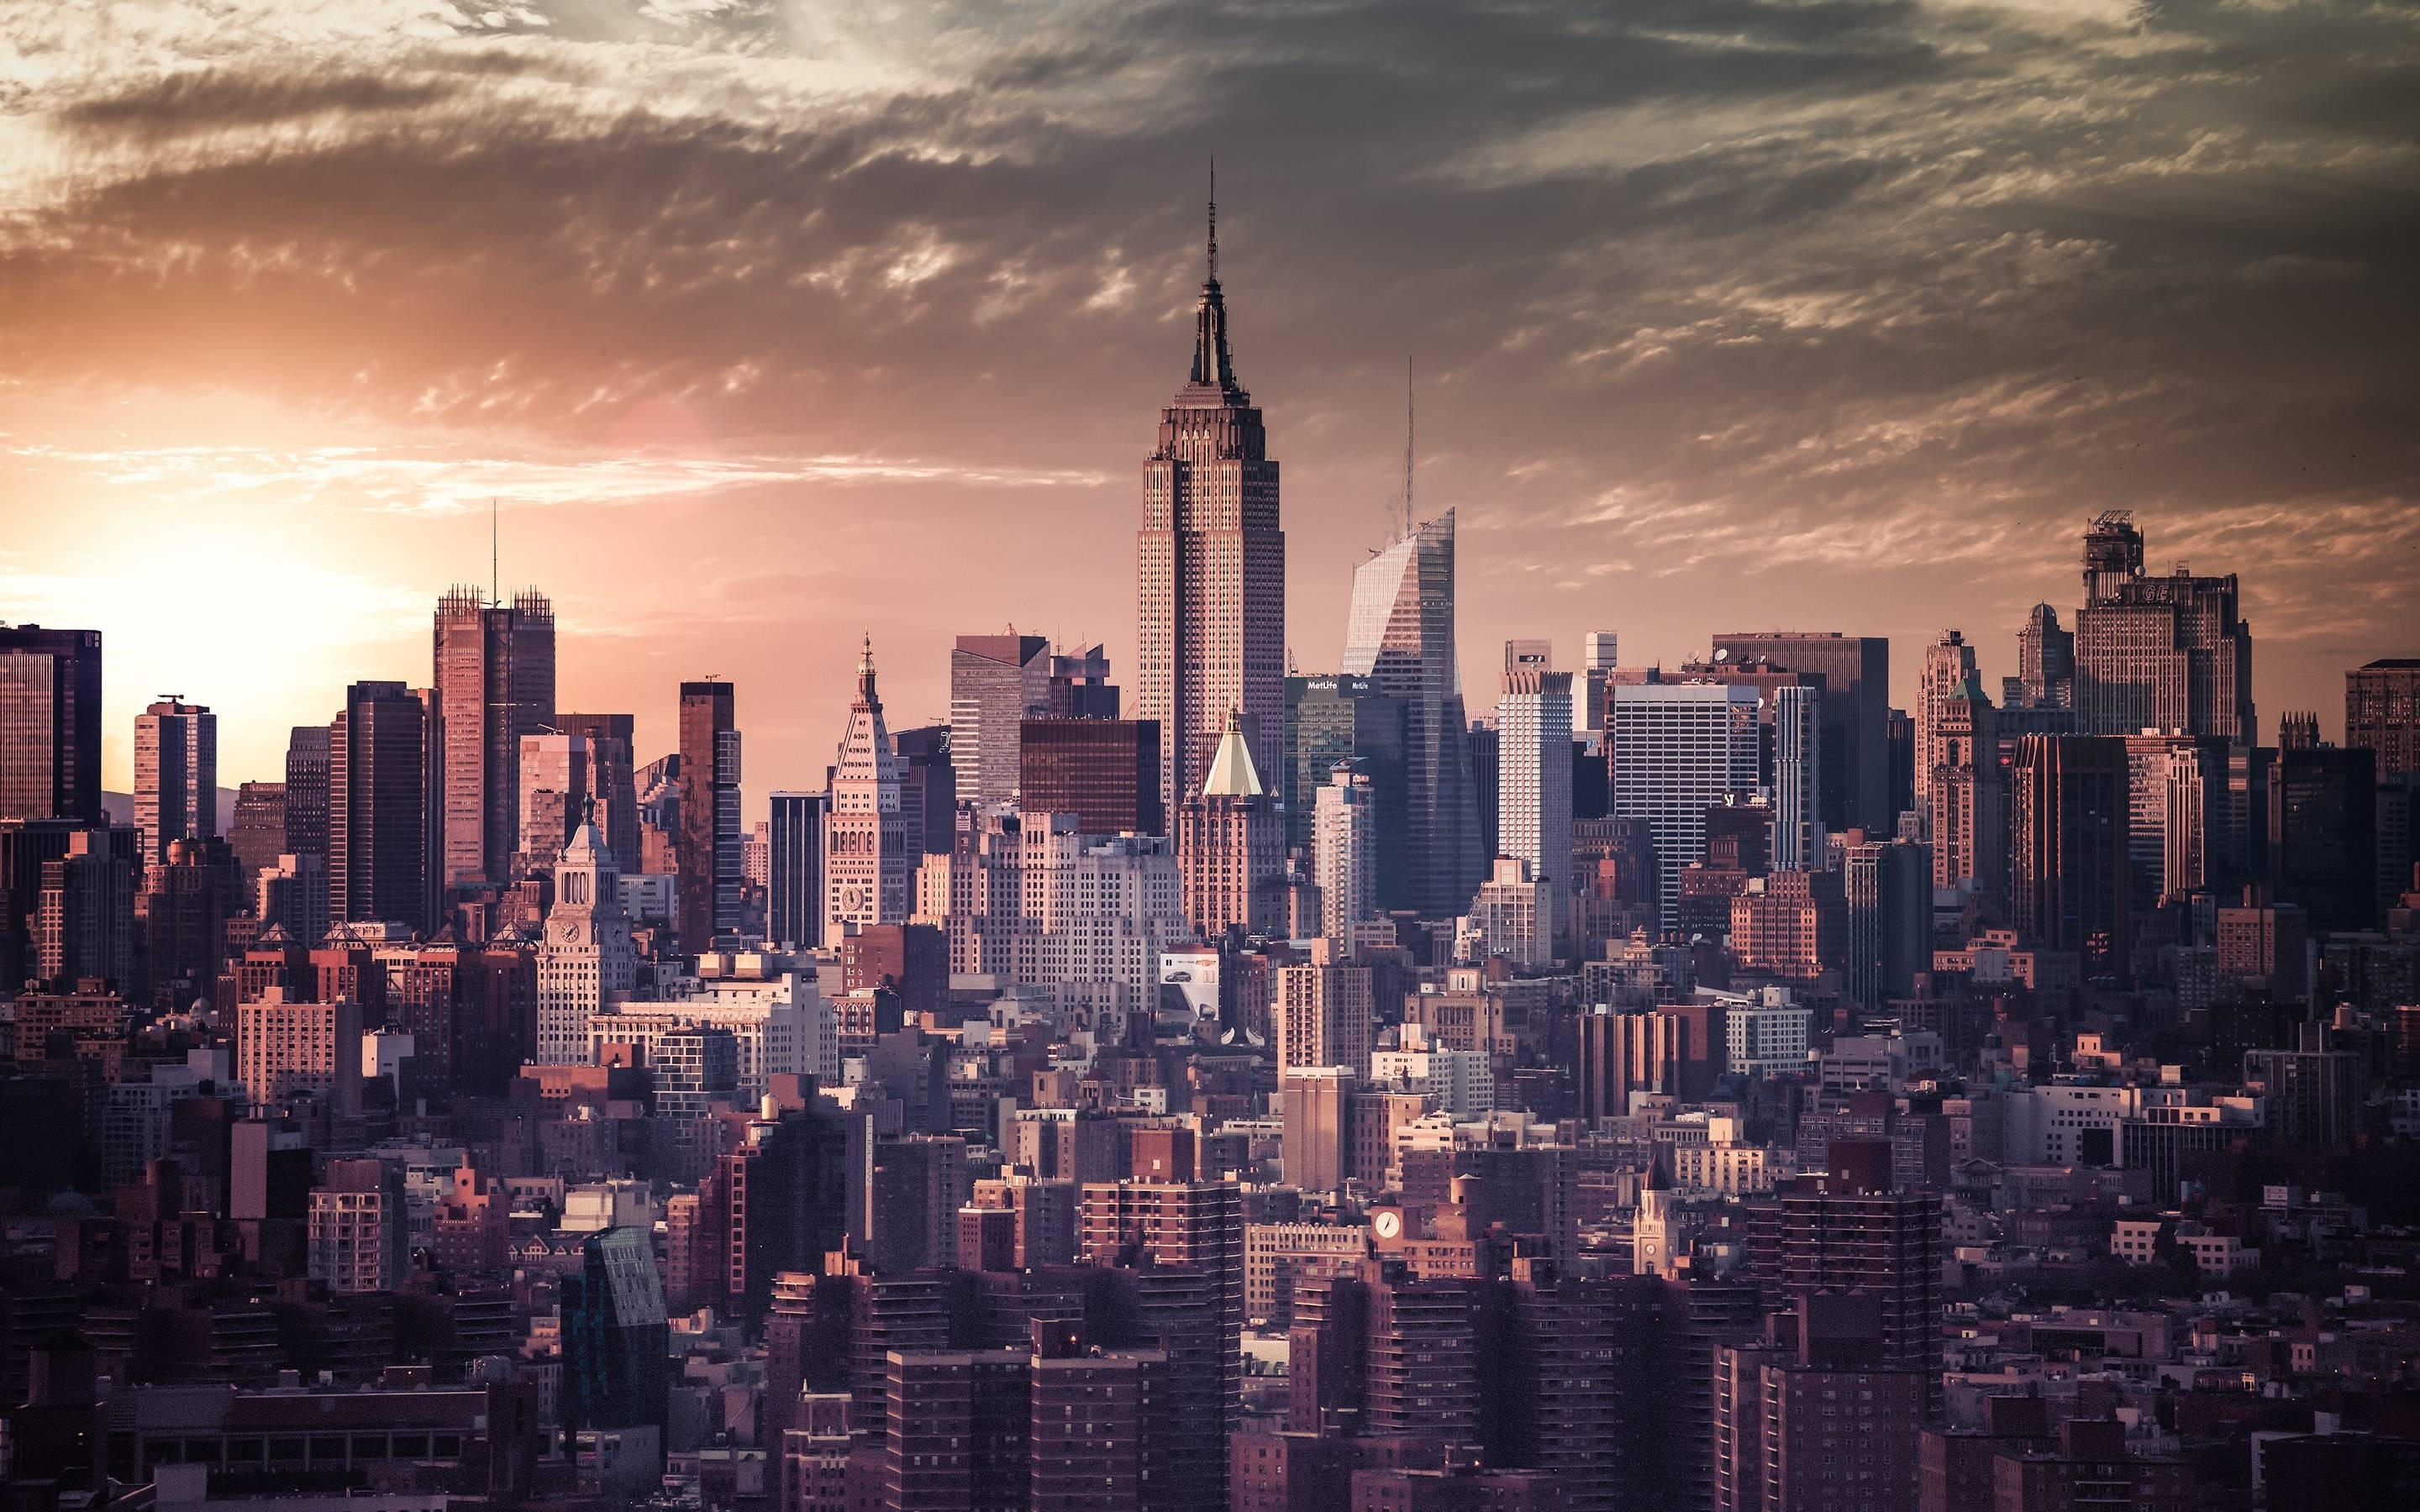 new york city wallpaper hd | pixelstalk